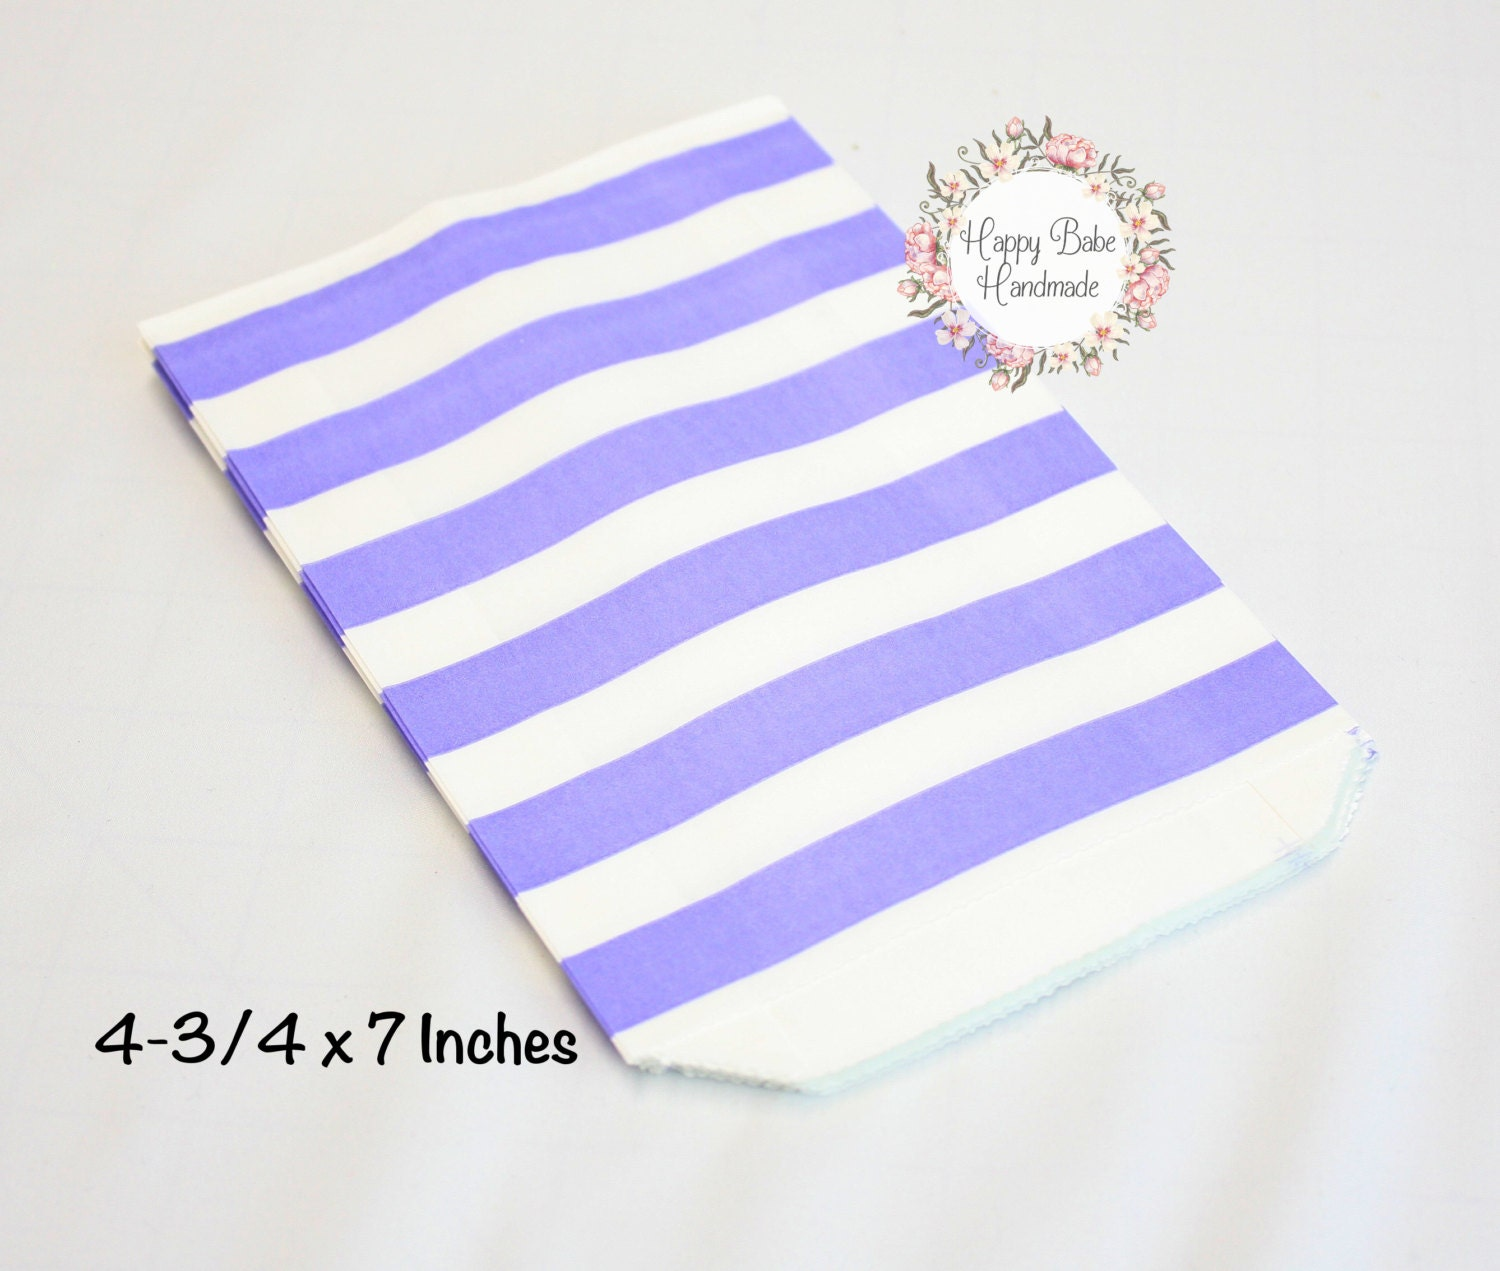 Lavender Rugby Stripe Bag, 4--3/4 by 7 Inches, 12 Bags, Light Purple ...